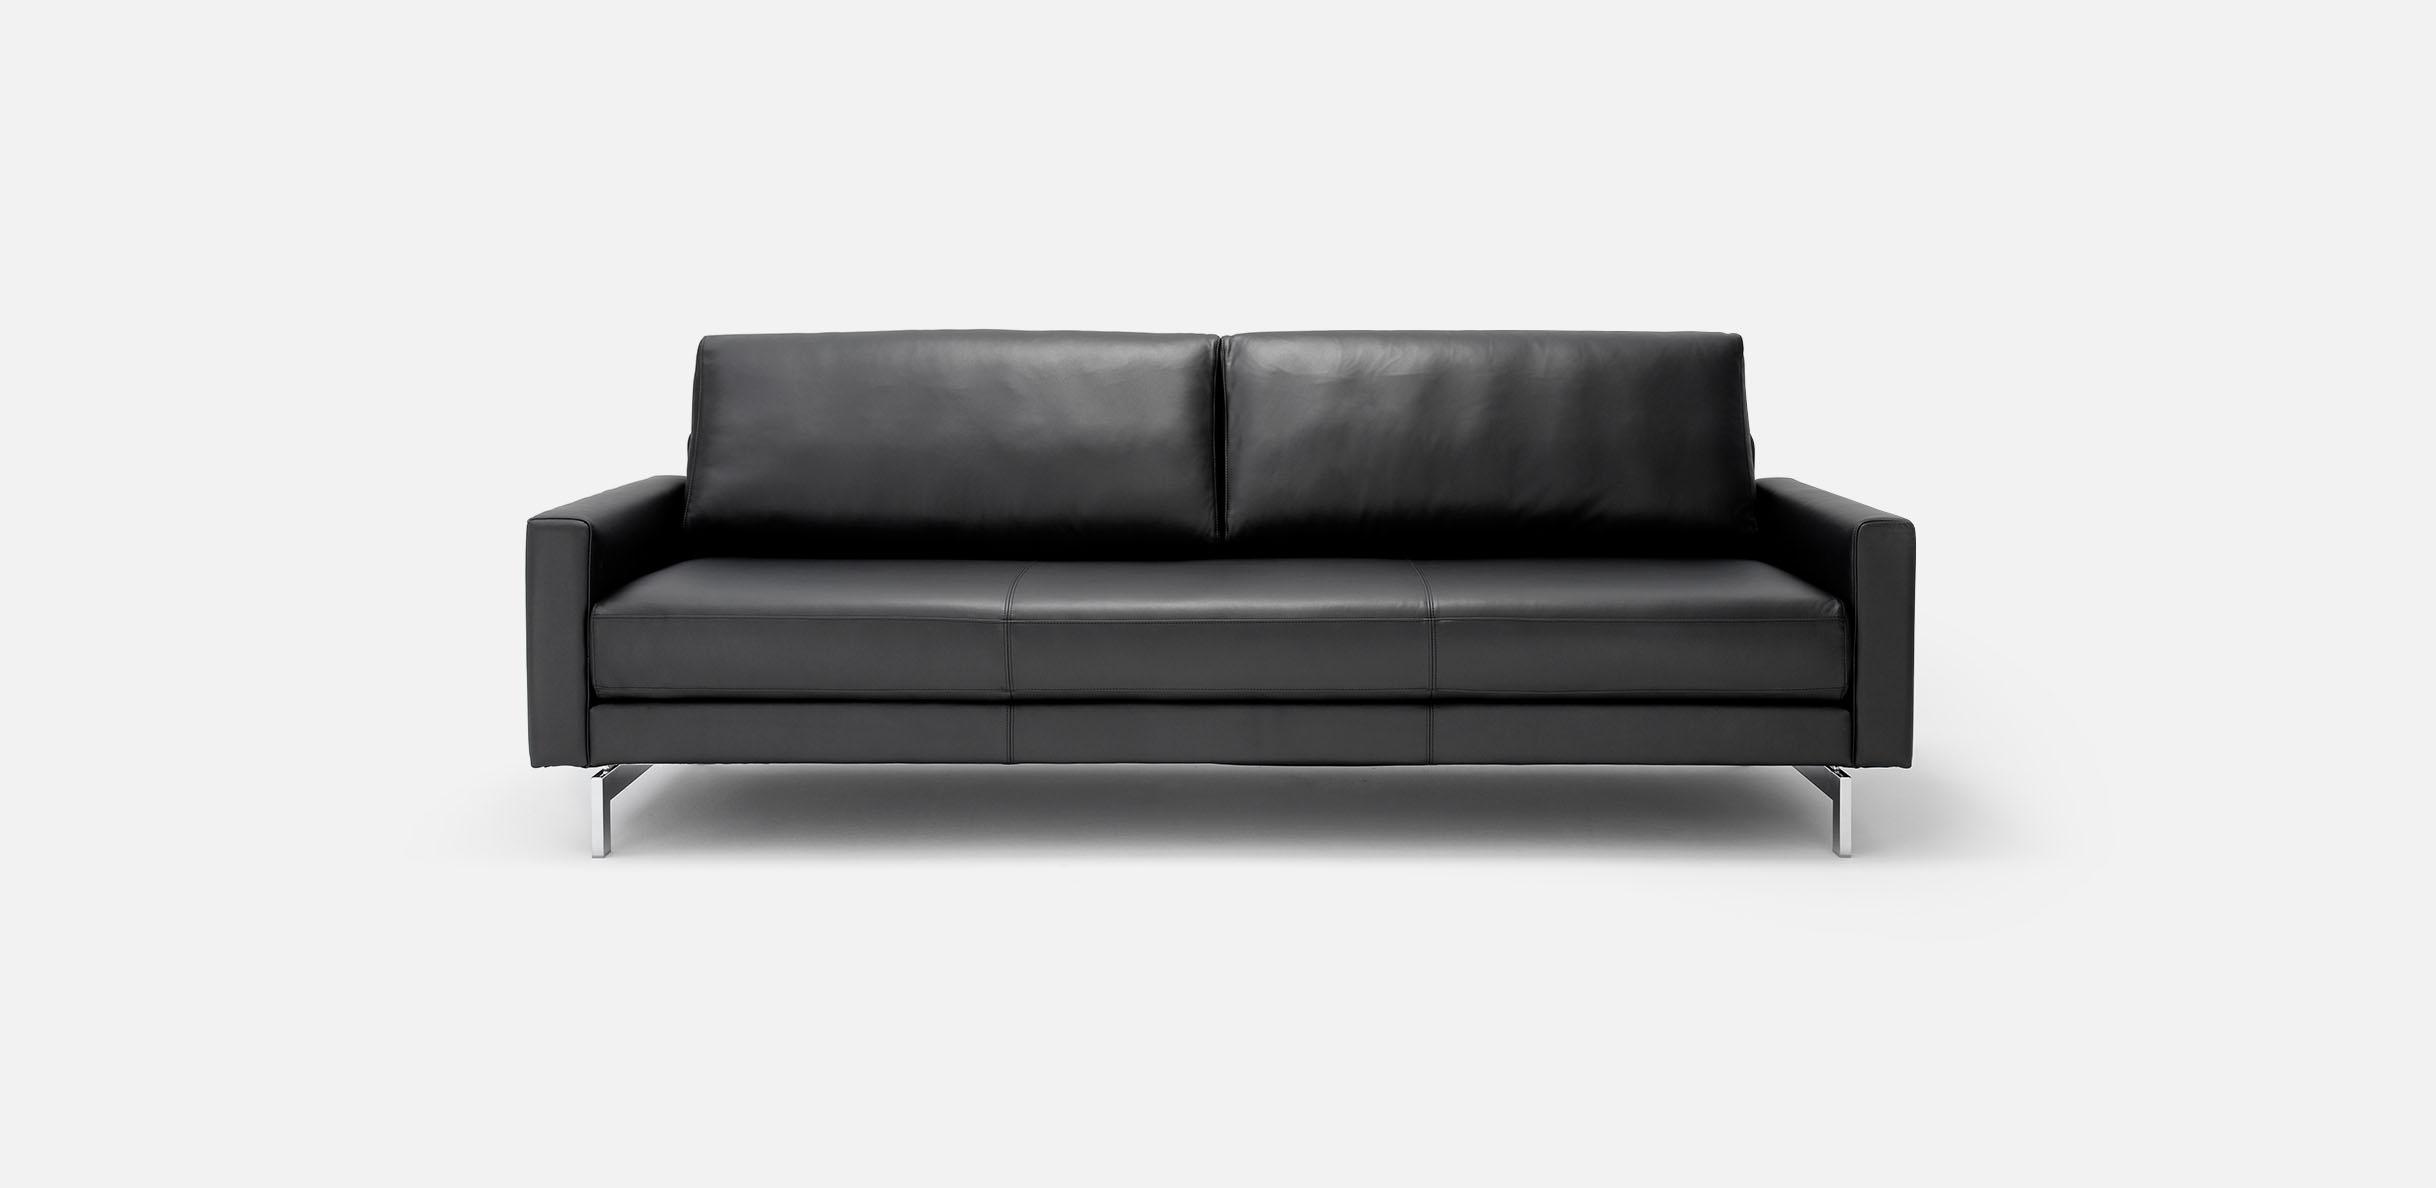 Rolf Benz Sofa 6500 Gebraucht About Rolf Benz On Sofas Teal Sofa And Luxury Rooms